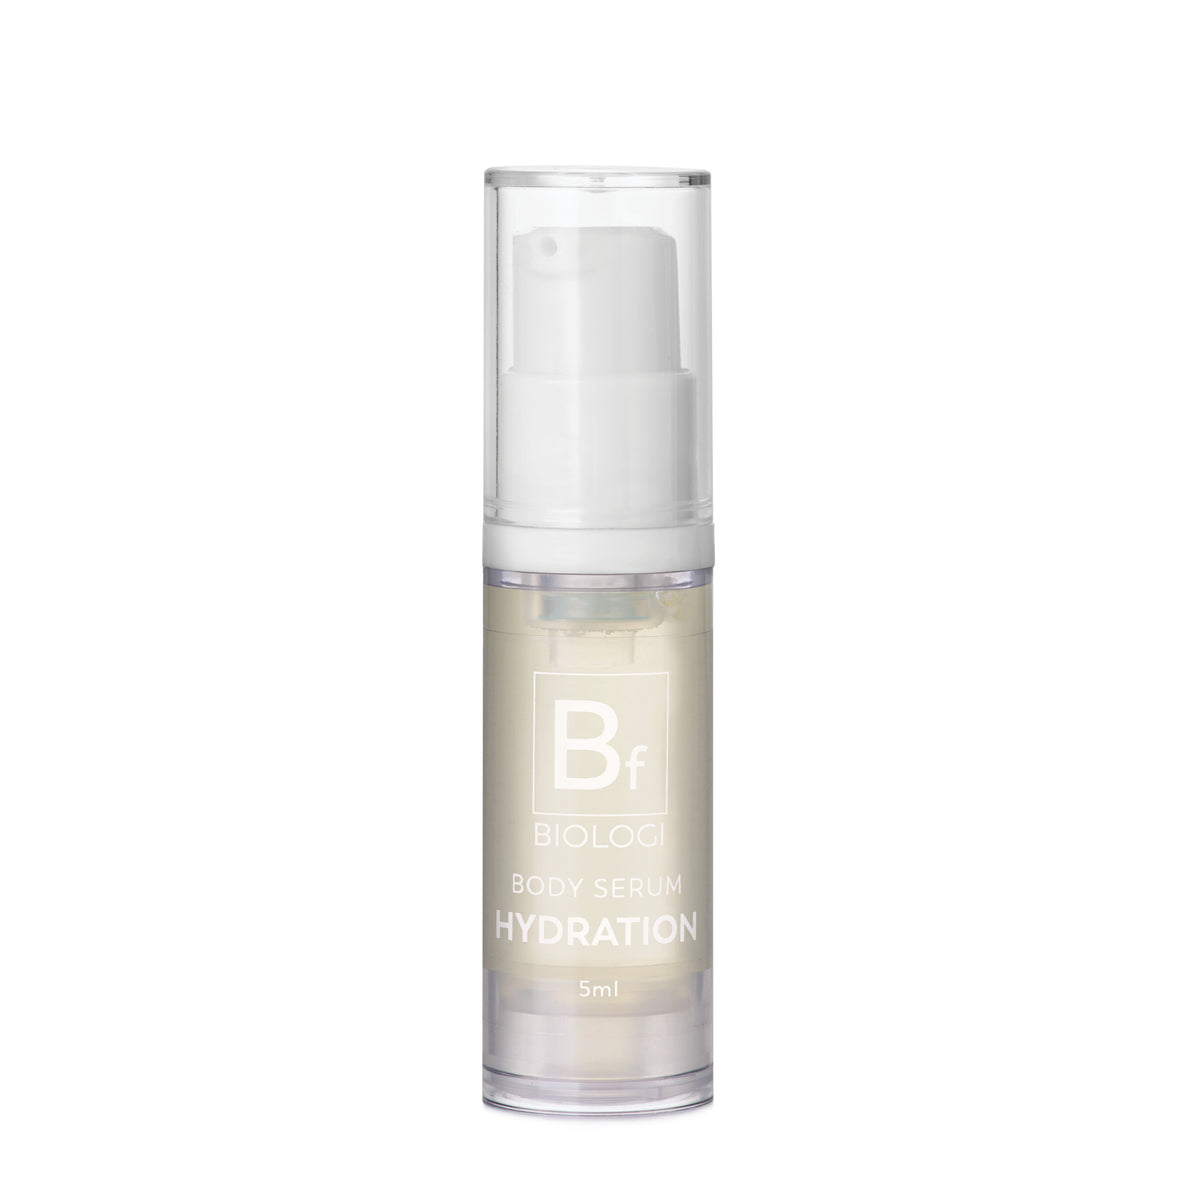 Biologi - Bf Hydration Body Serum Mini size 5ml